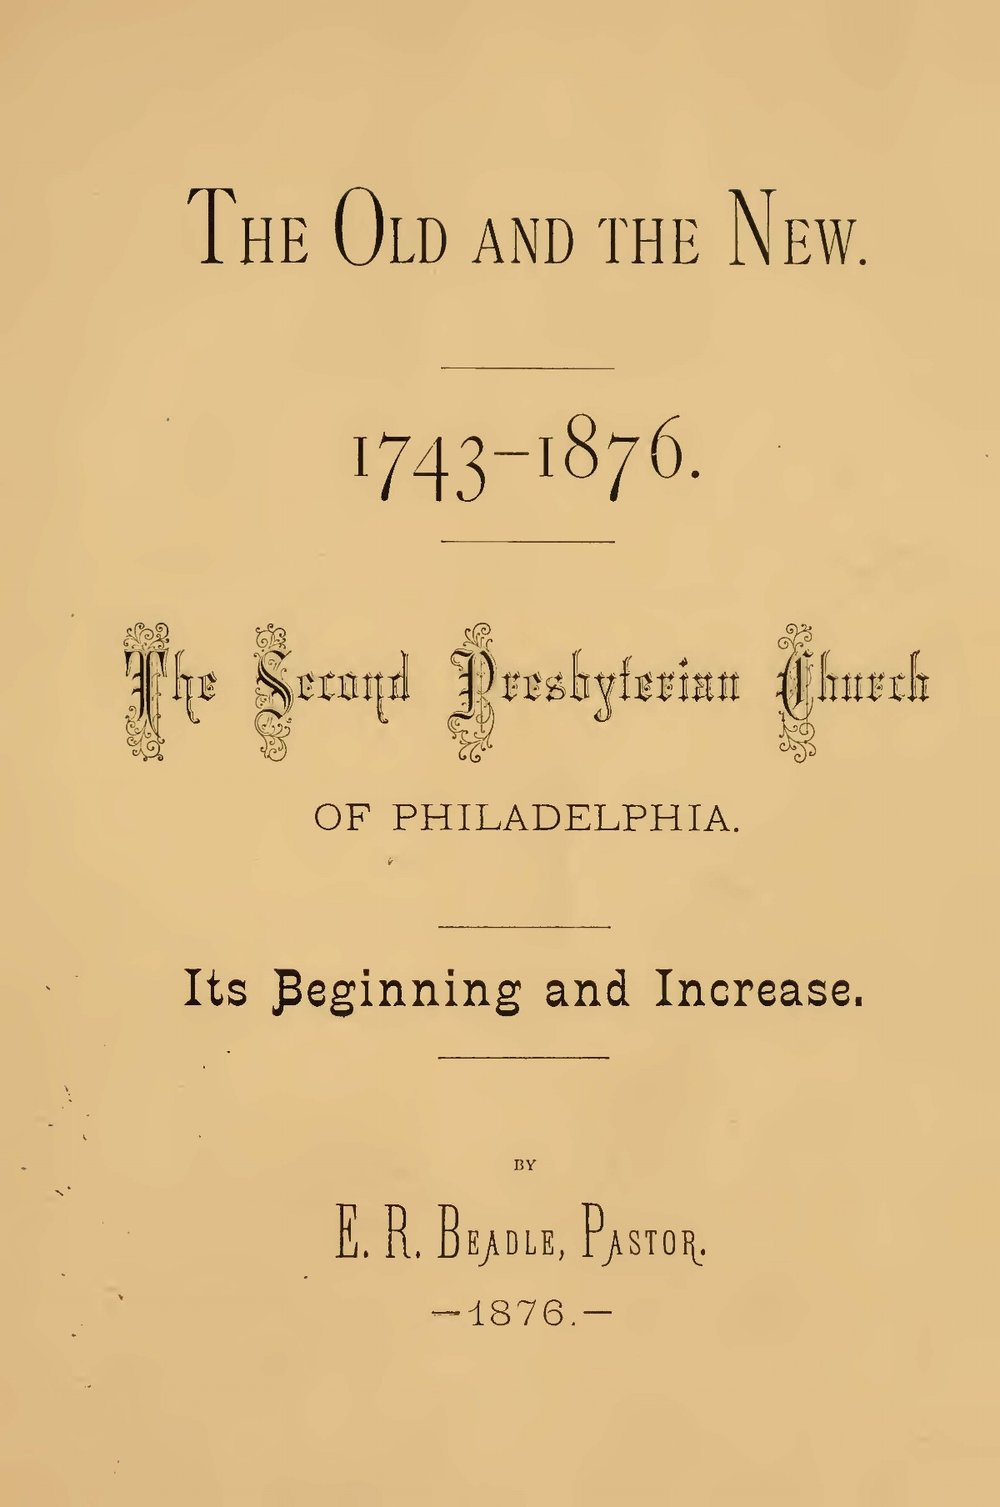 Beadle, Elias Root, The Old and the New, 1743-1876 the Second Presbyterian Church of Philadelphia Title Page.jpg